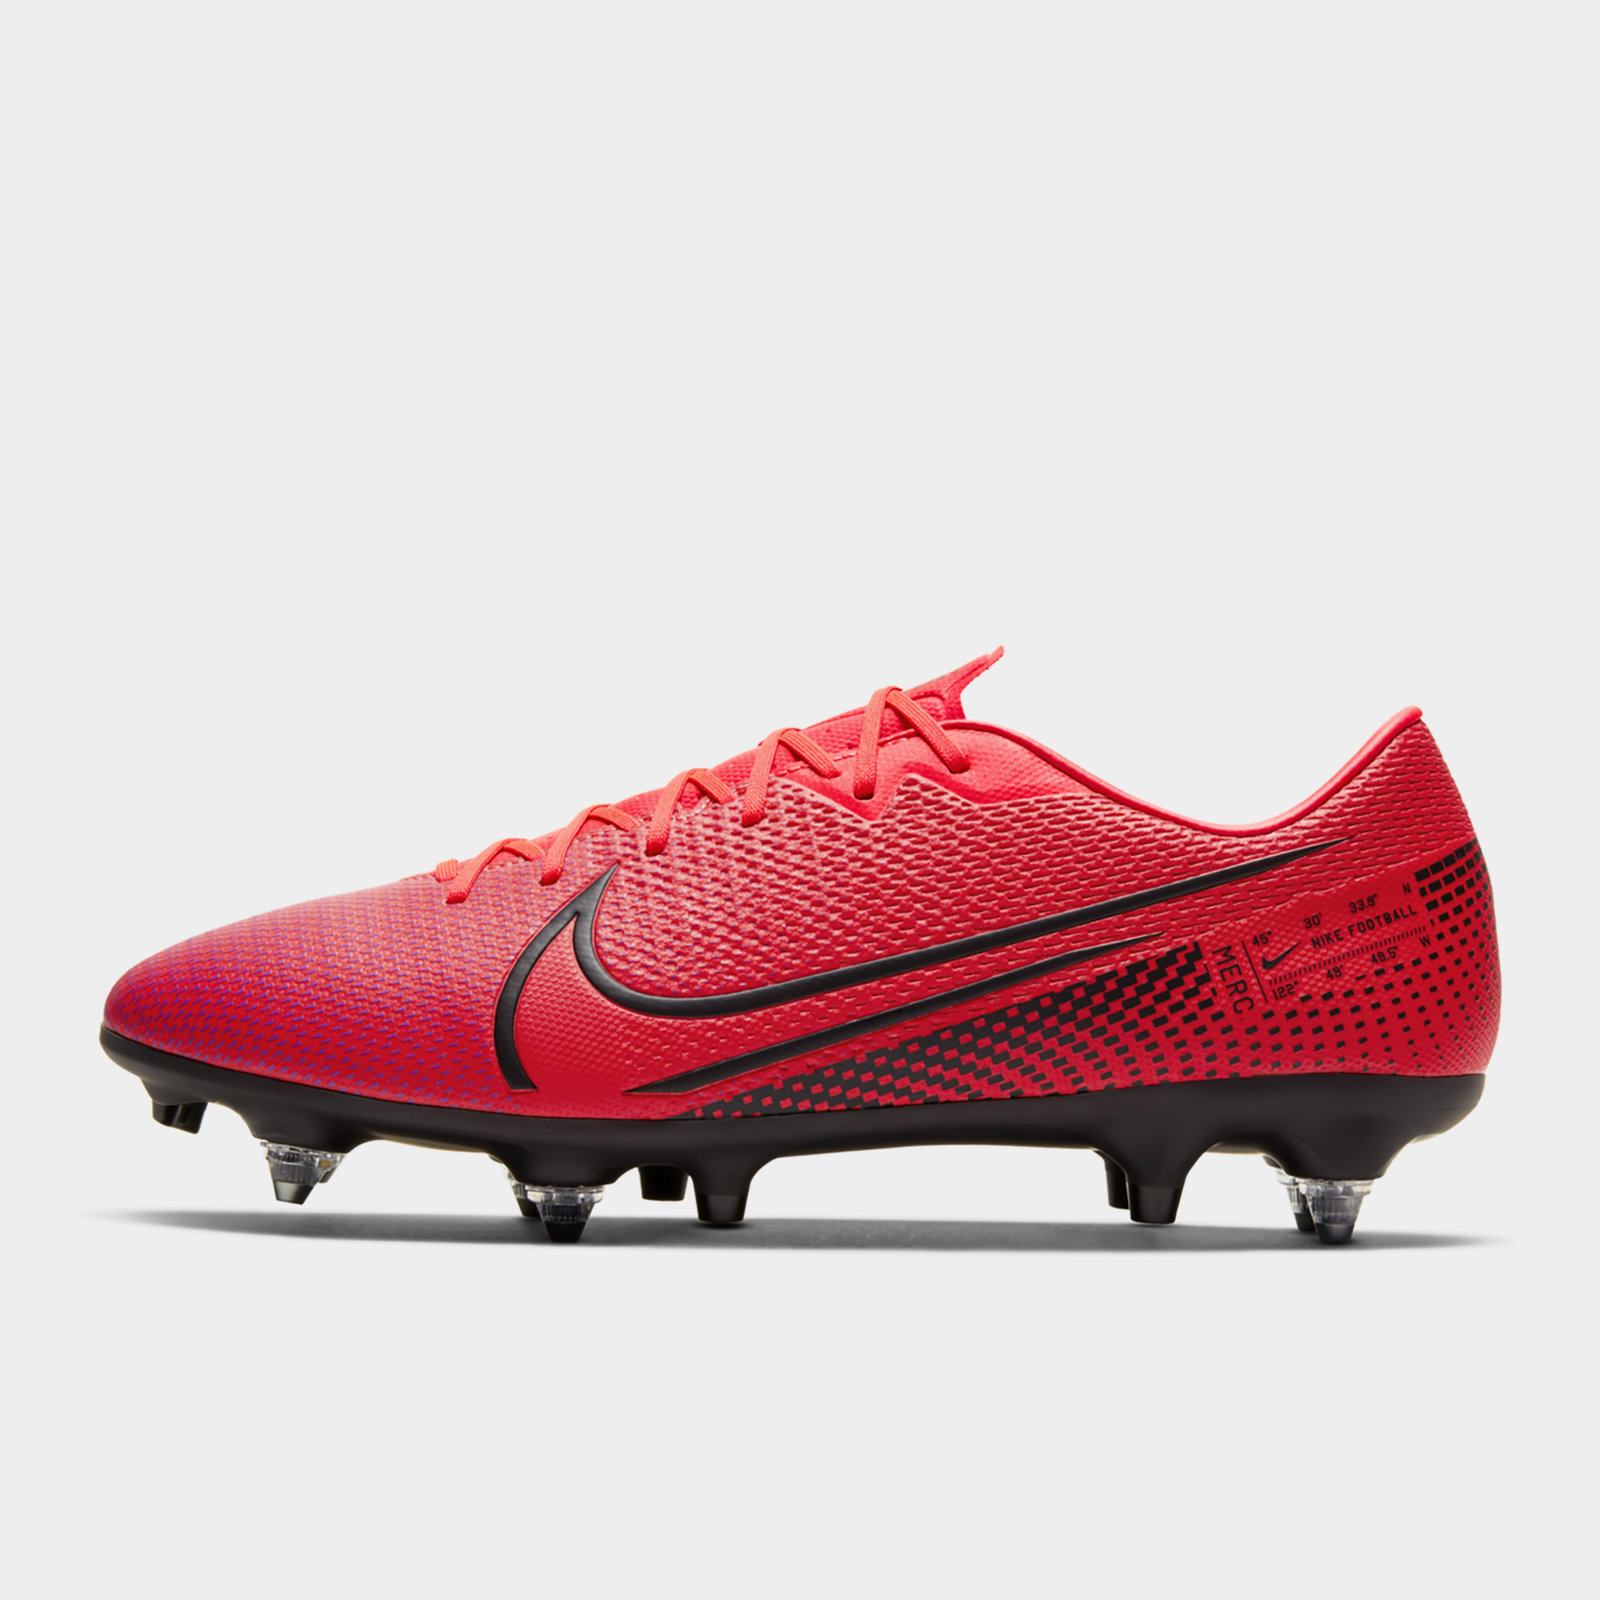 Mercurial Vapor 13 Academy Soft Ground Pro Football Boots